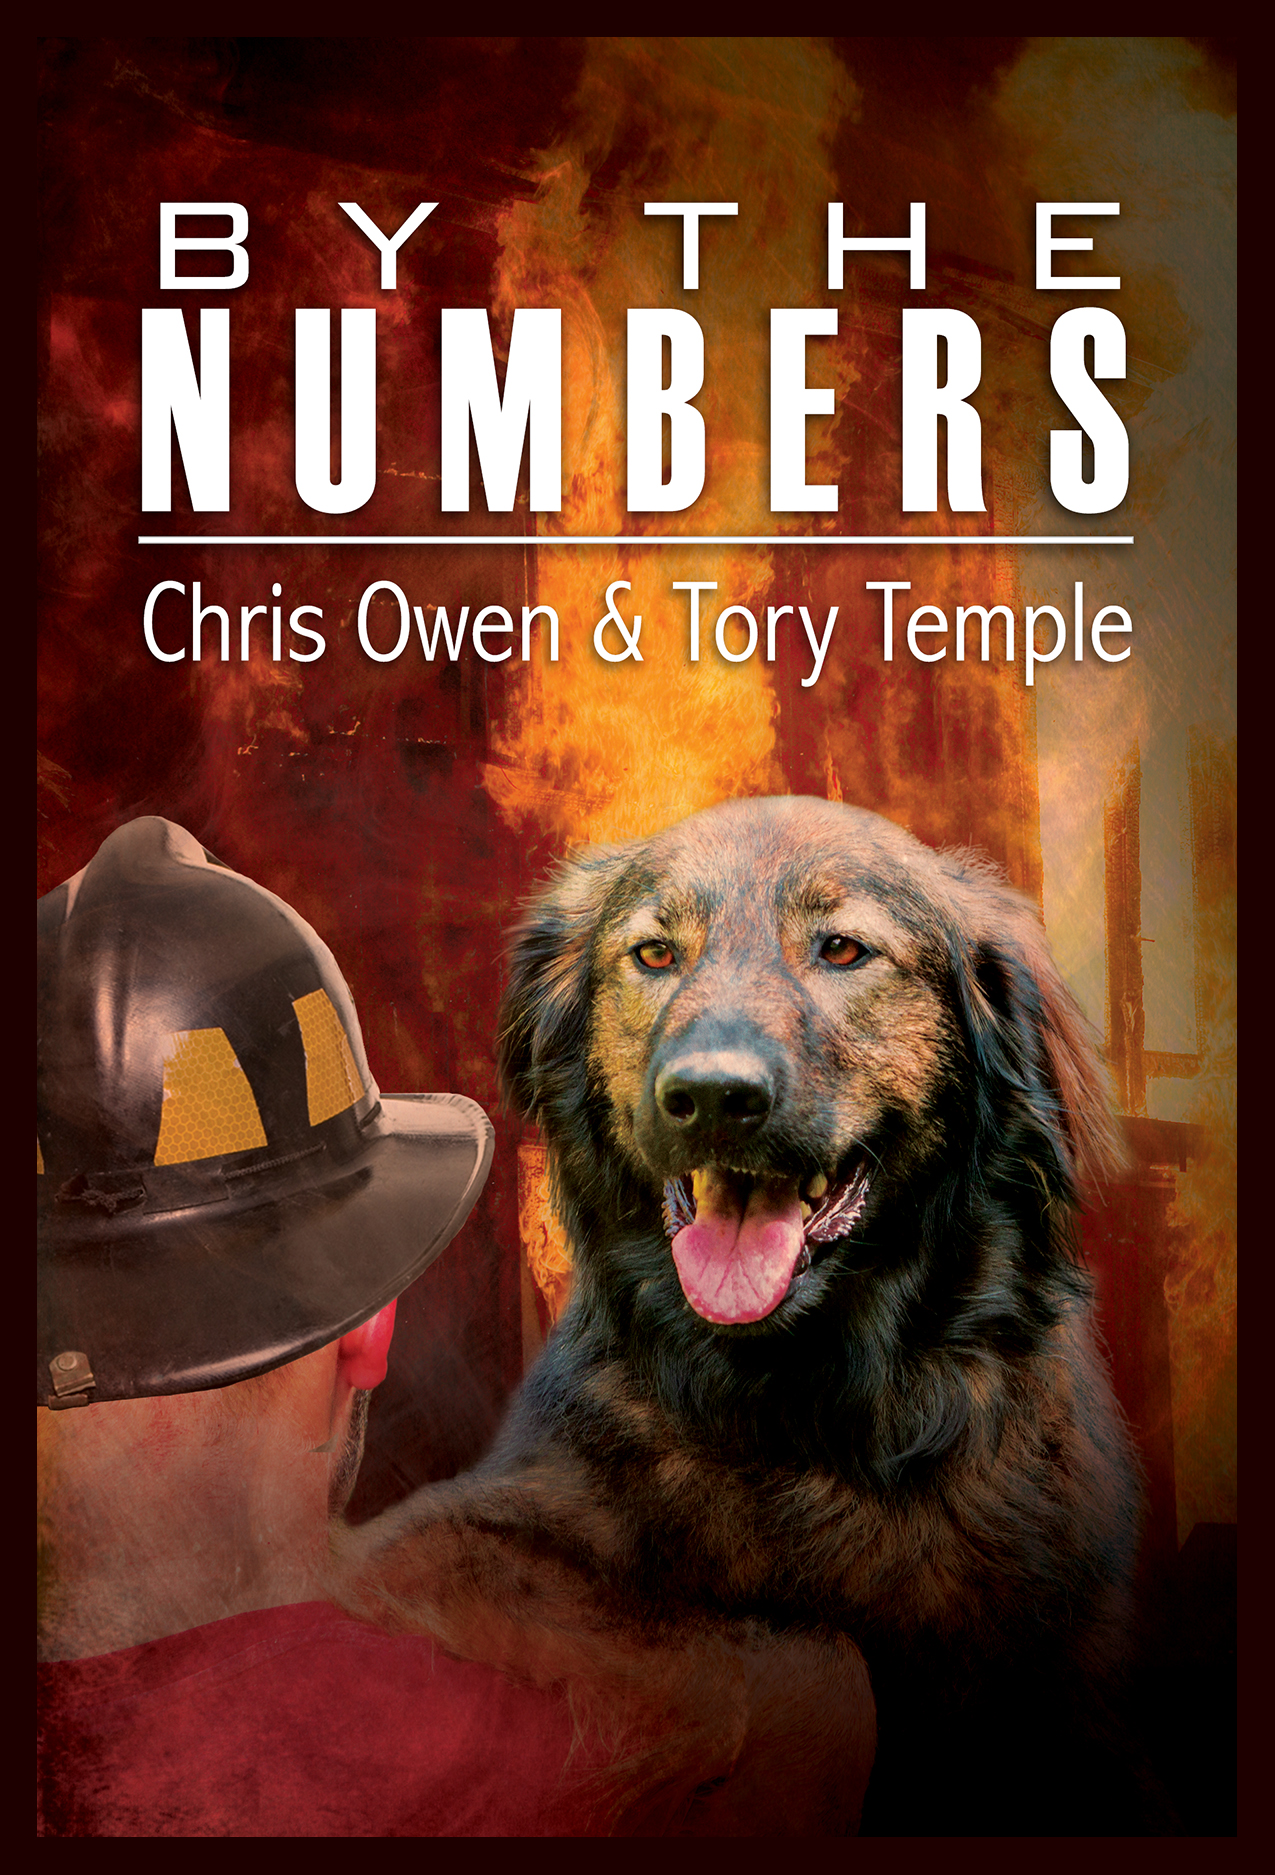 By the Numbers by Chris Owen & Tory Temple